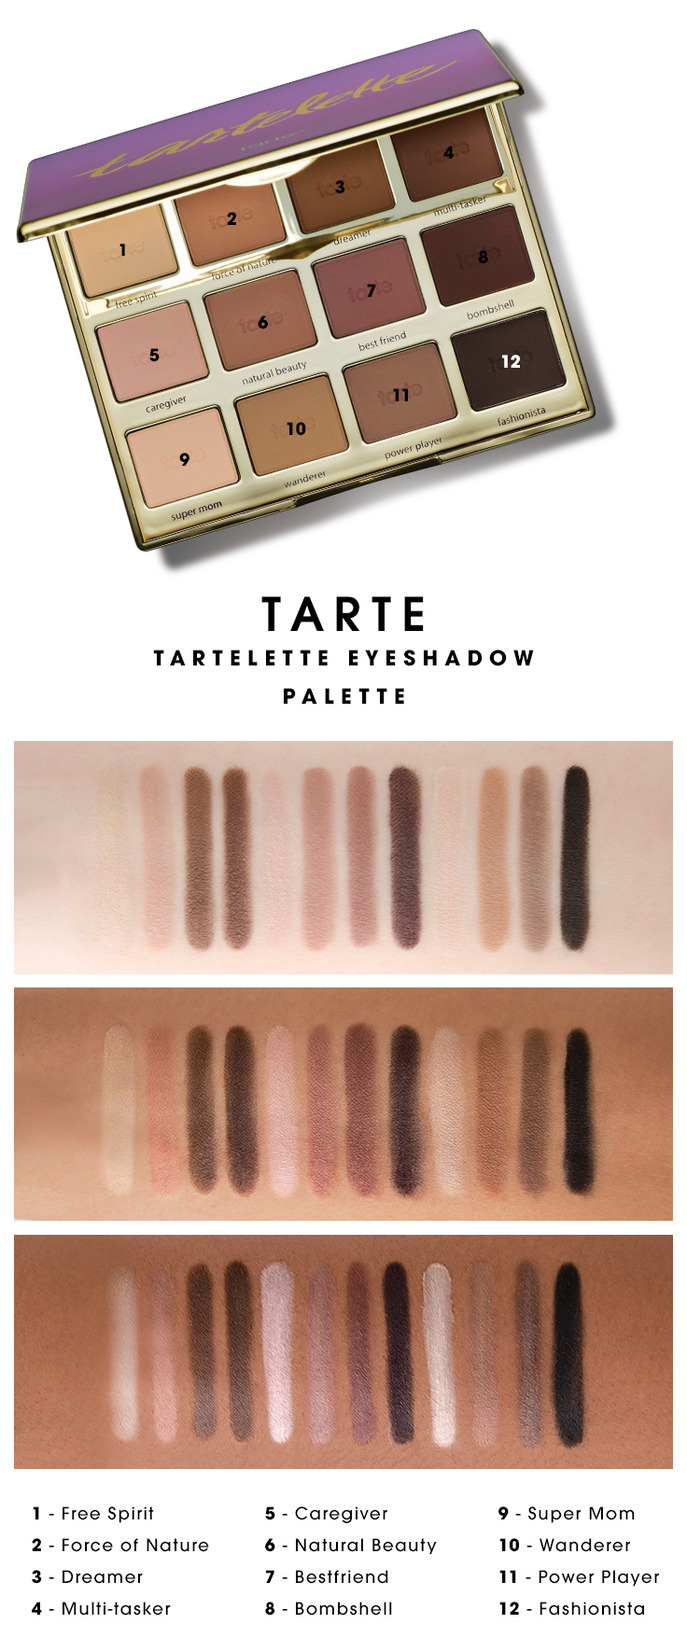 TARTE EYESHADOW LOOKS GOOD ON ALL SKIN TONES